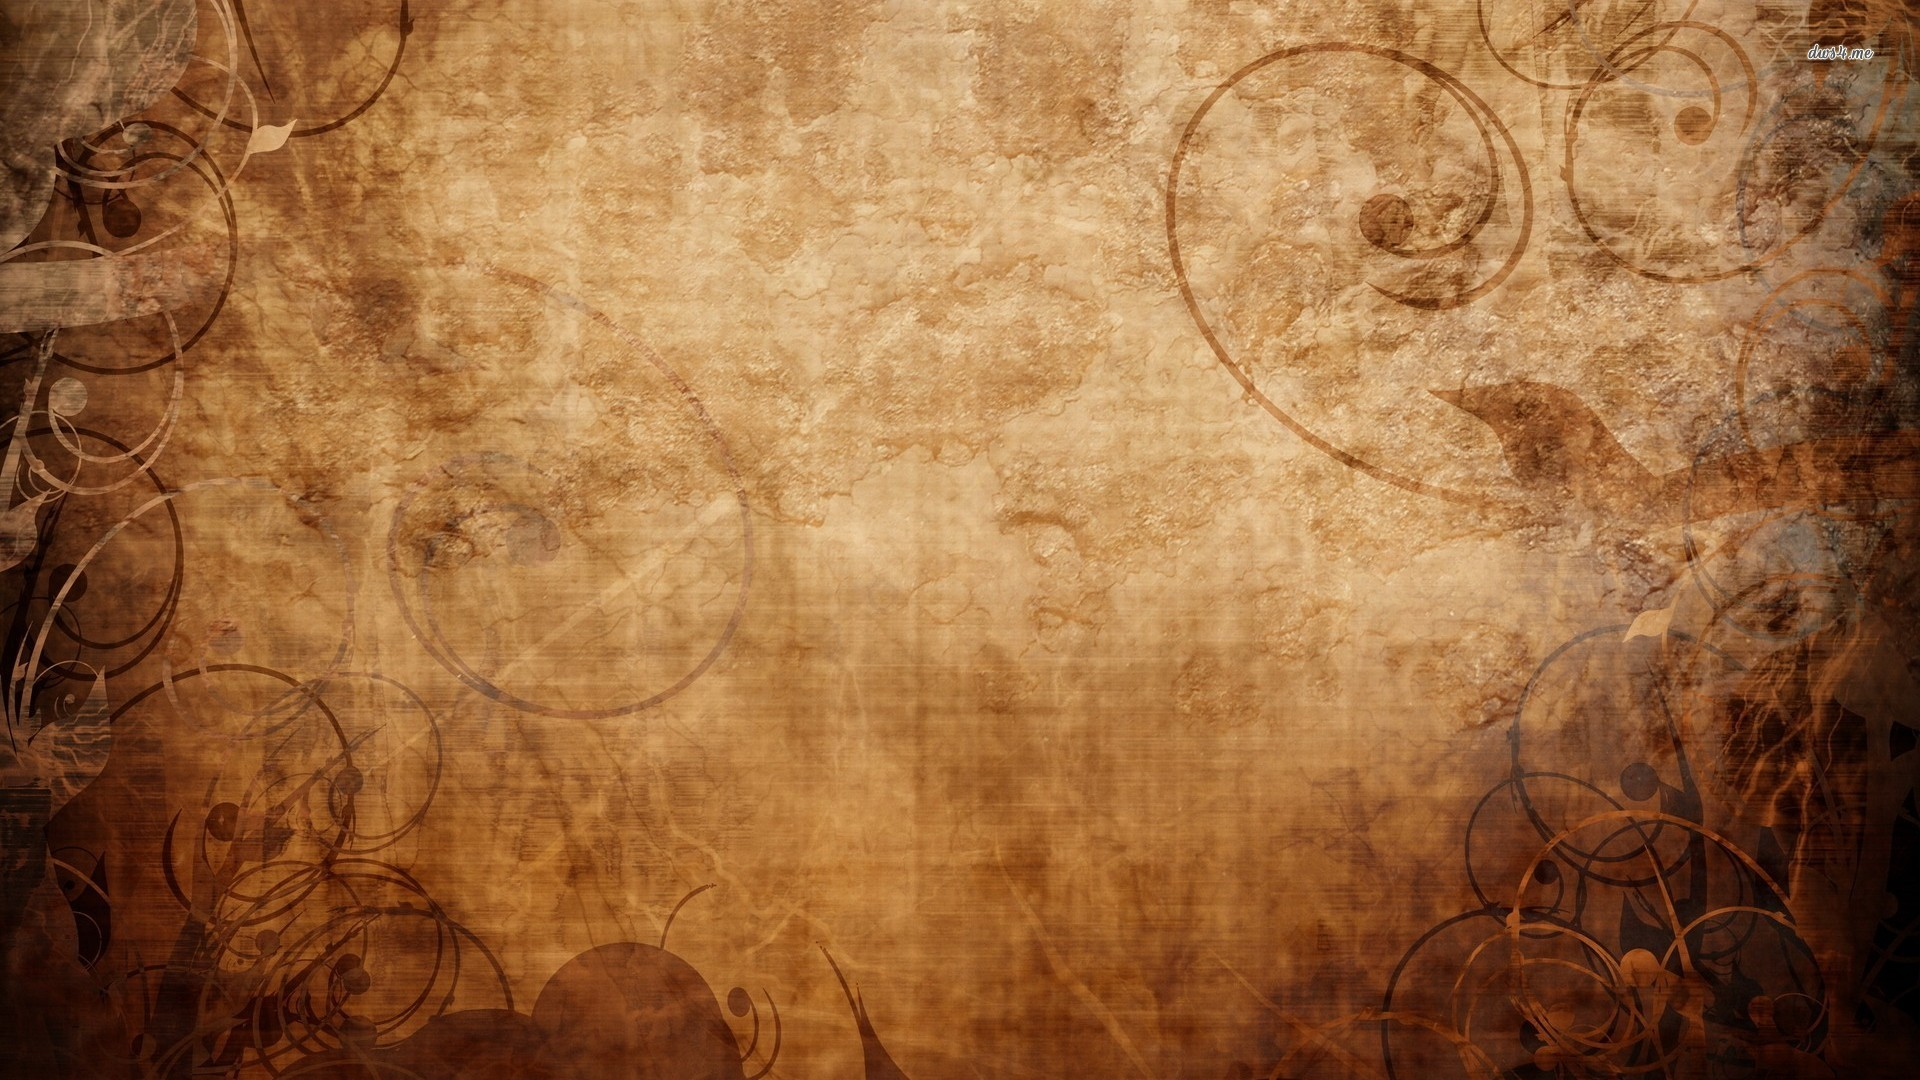 1920x1080 Wallpapers Old Texture World Map On Paper Hd High Definition .